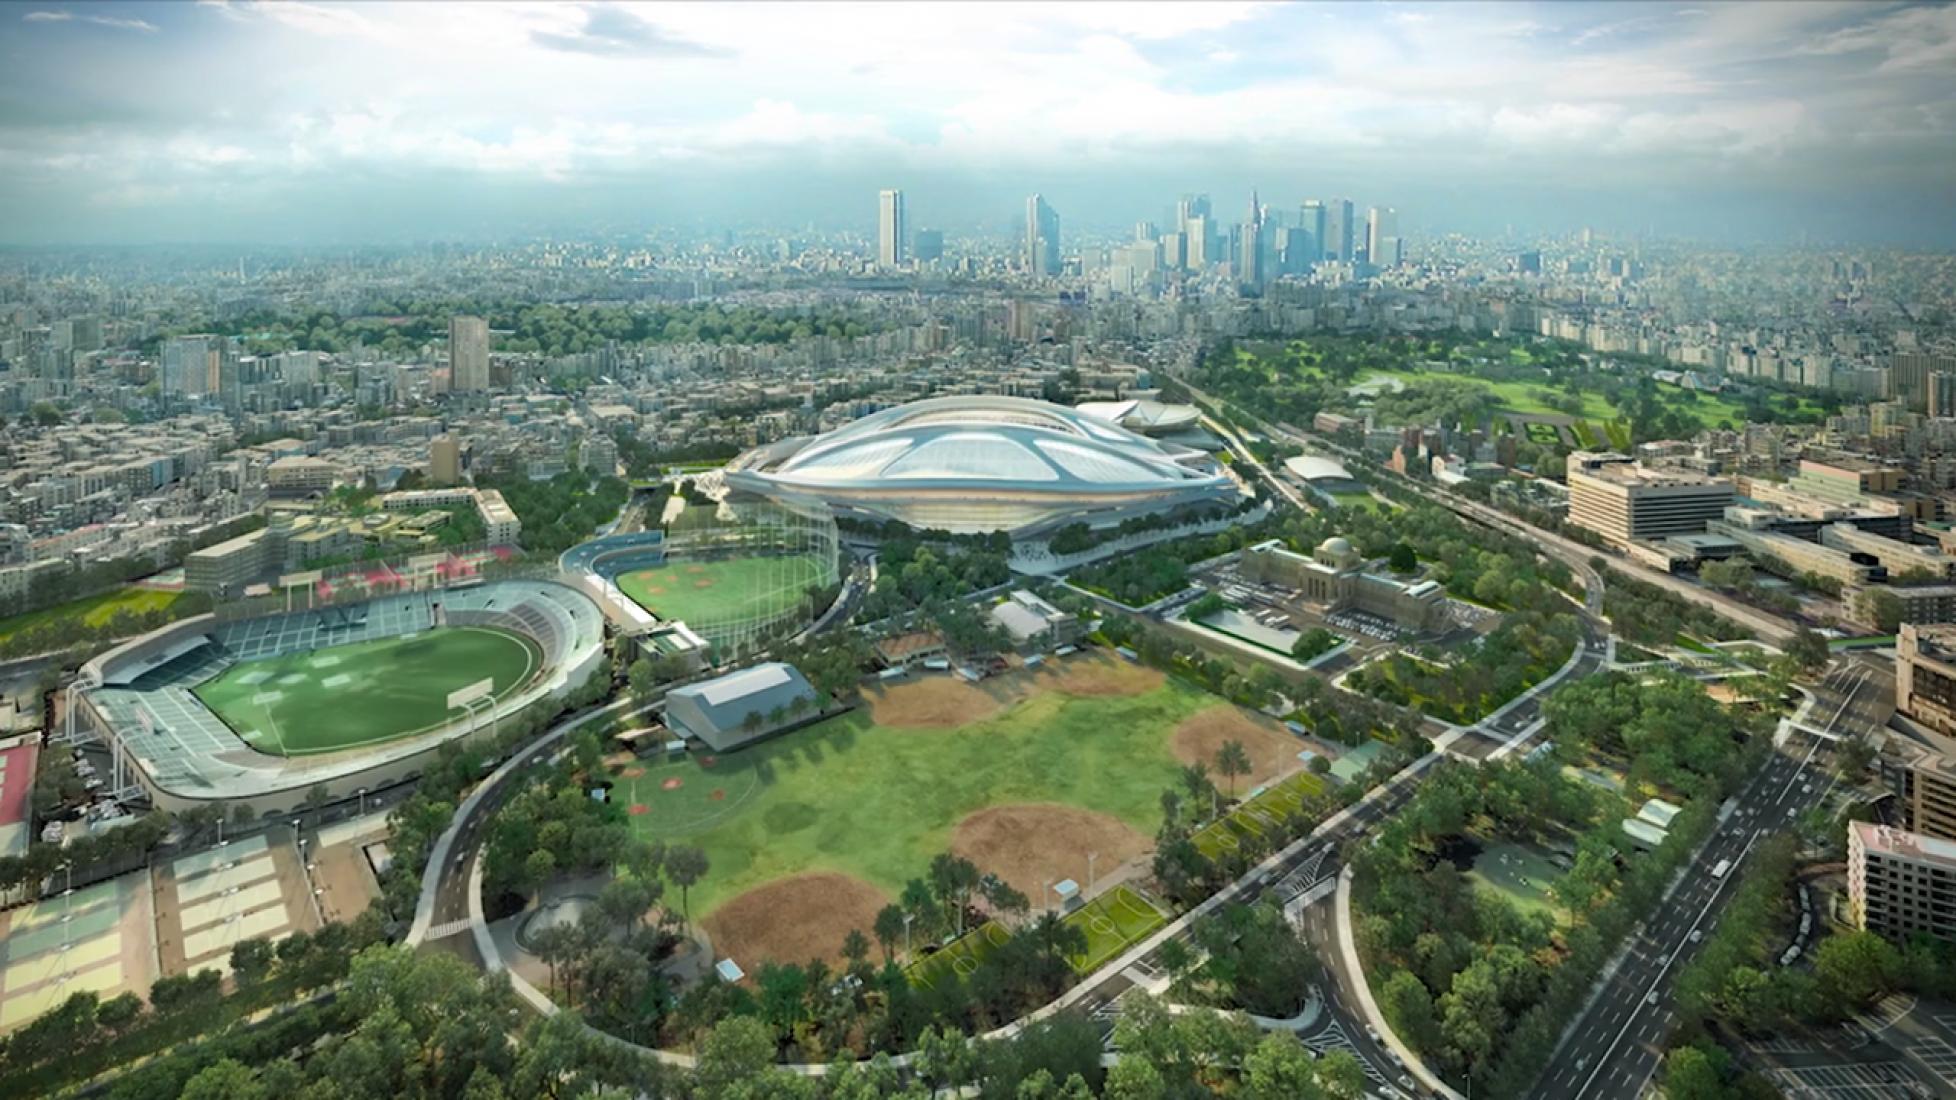 Tokyo overview. New National Stadium in Tokyo by Zaha Hadid Architects. Video screenshot.